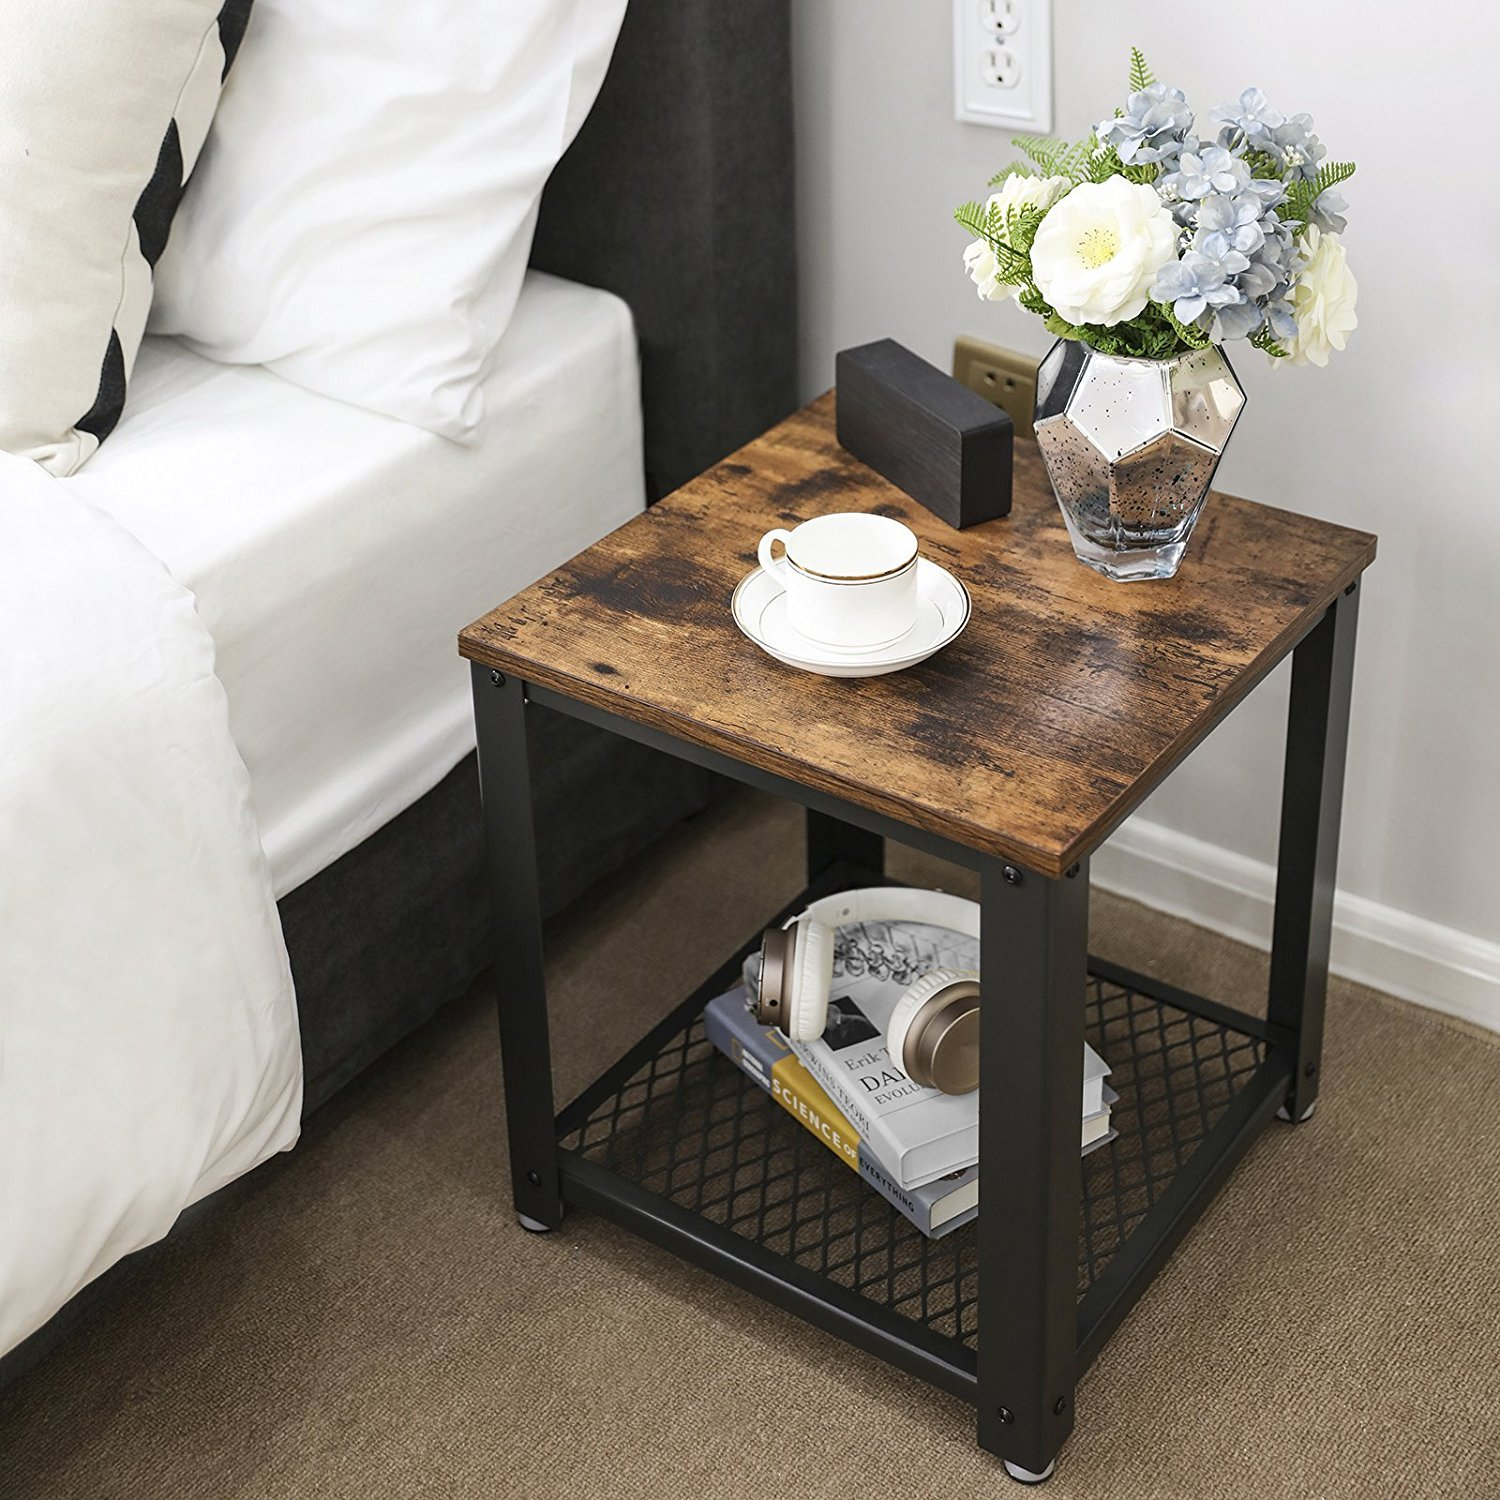 vintage tiered end table square frame side with metal grate shelves live edge wood slab coffee used dressers black doors inch round tablecloth fits what size contemporary accent